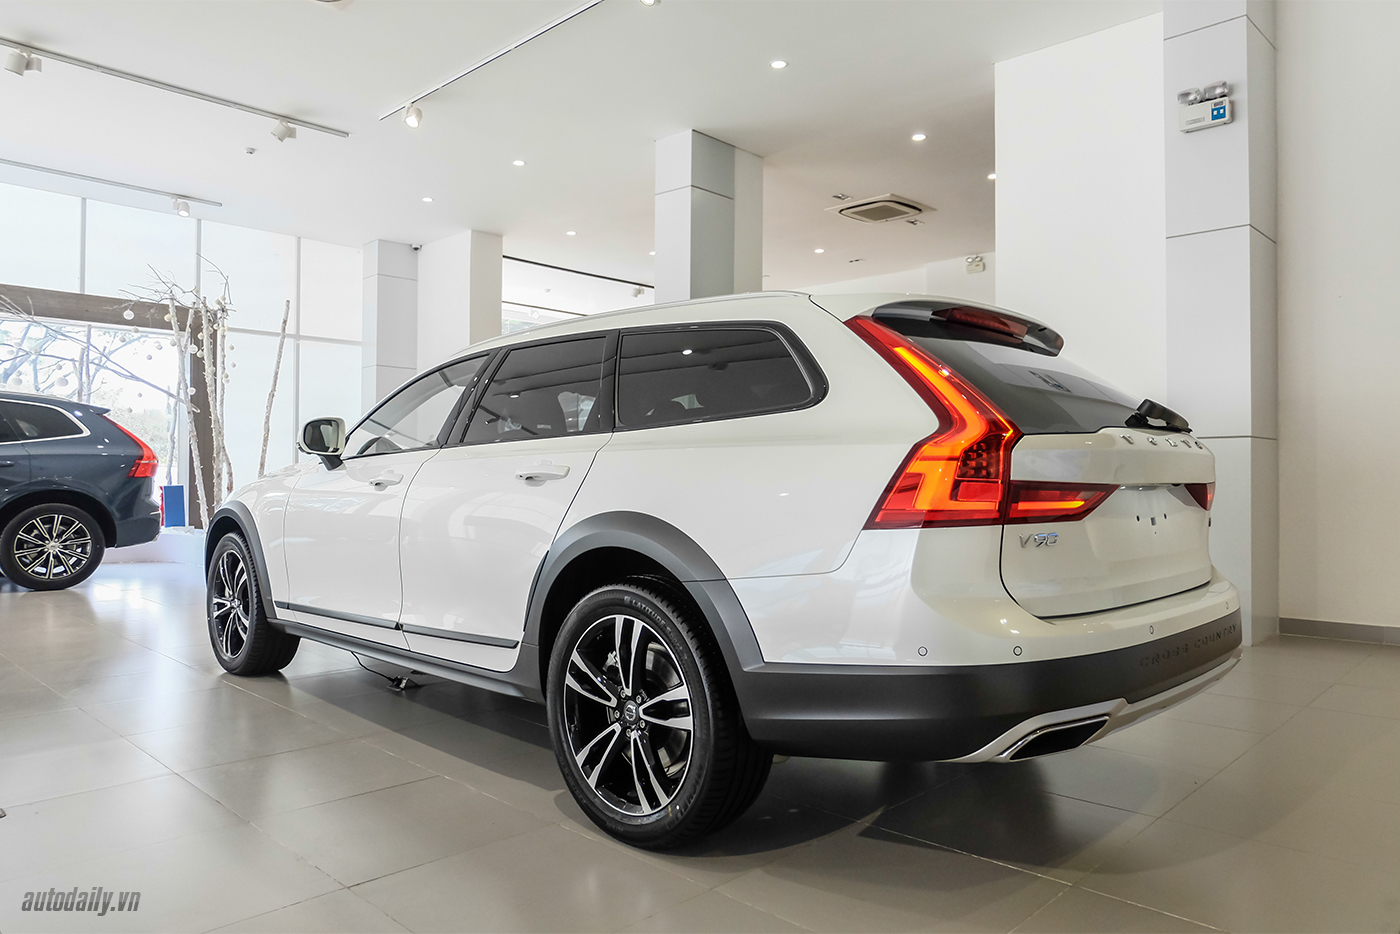 volvo-v90-cross-country-2018-4.jpg